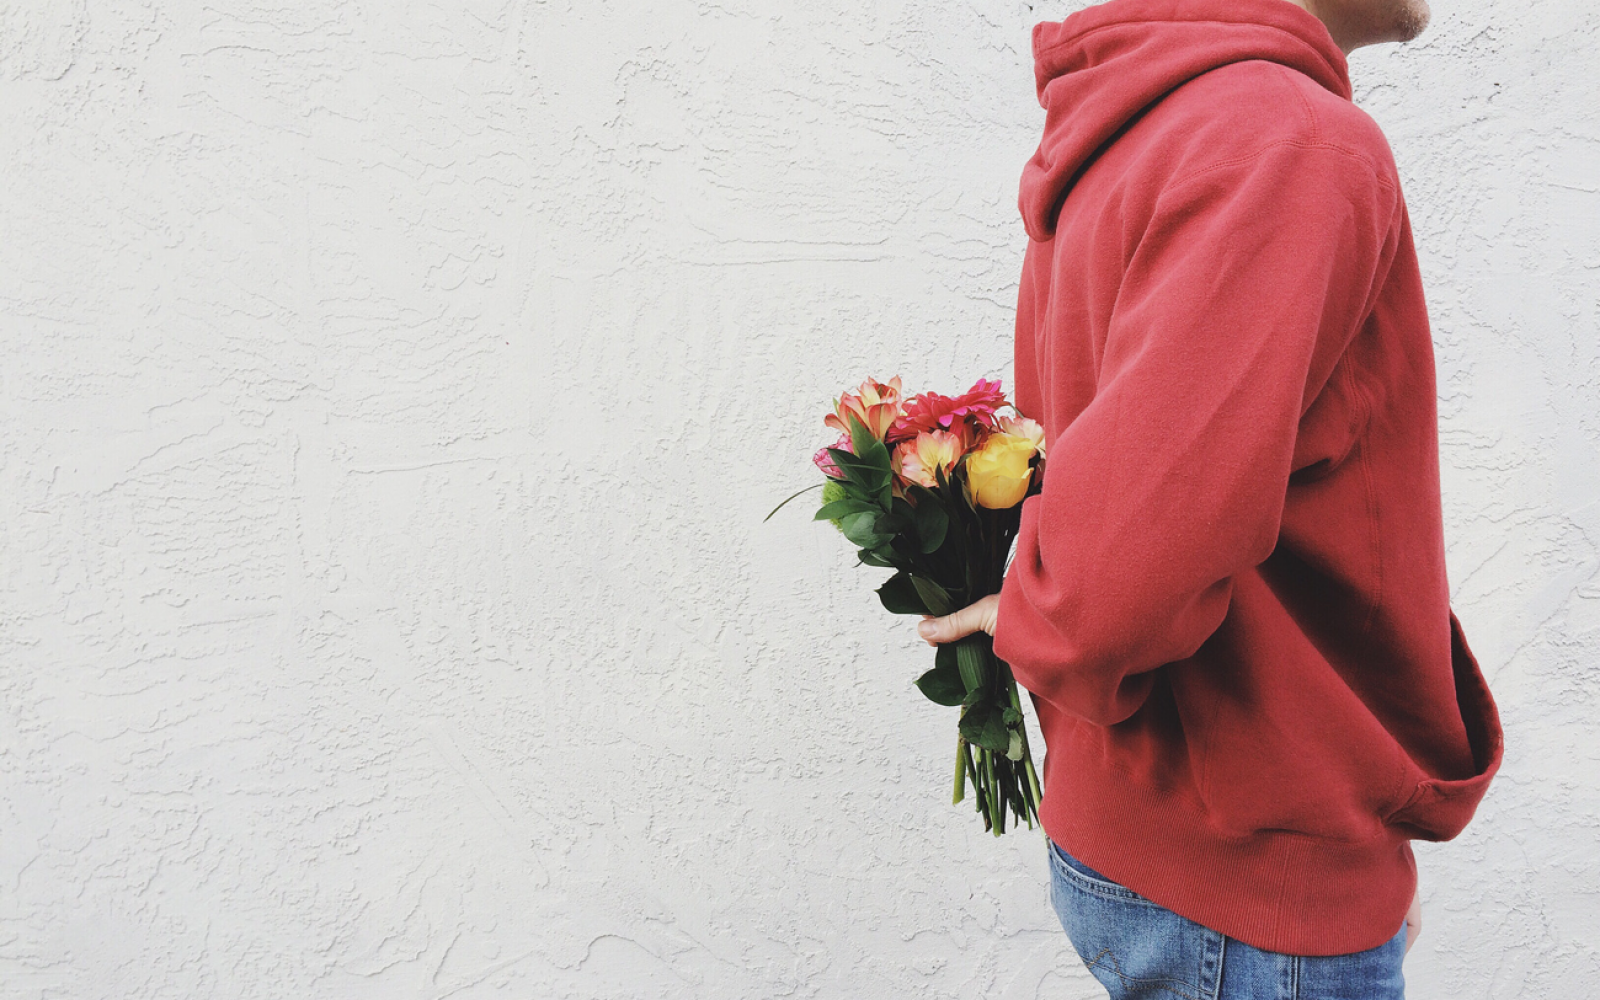 23 Ways To Get A Guy Wrapped Around Your Finger